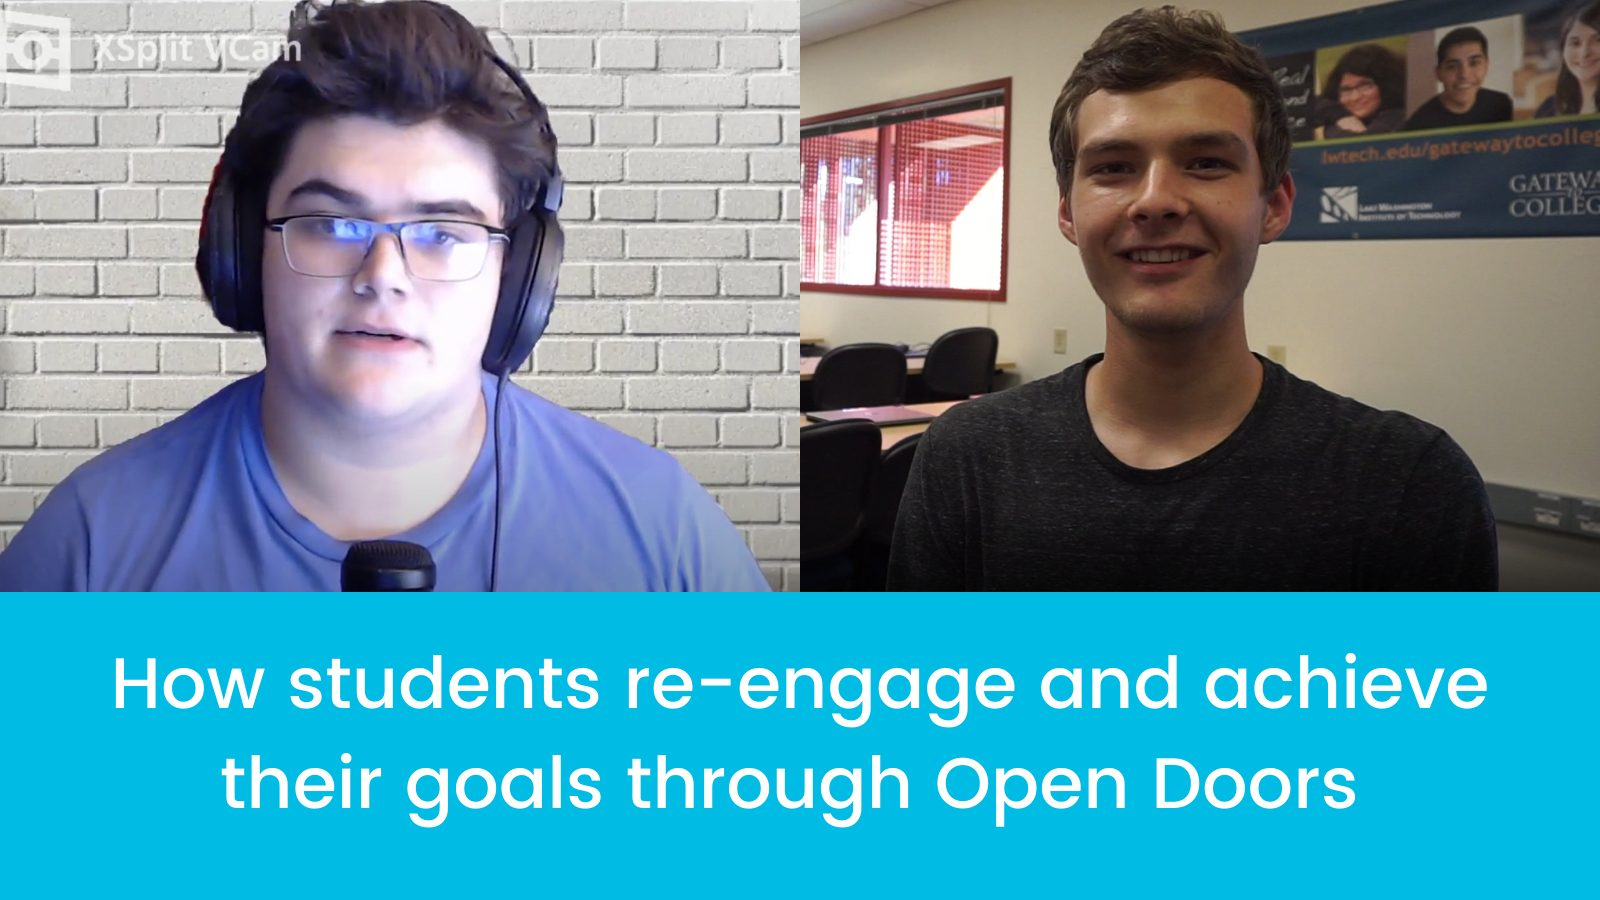 How students reengage and achieve their goals through Open Doors